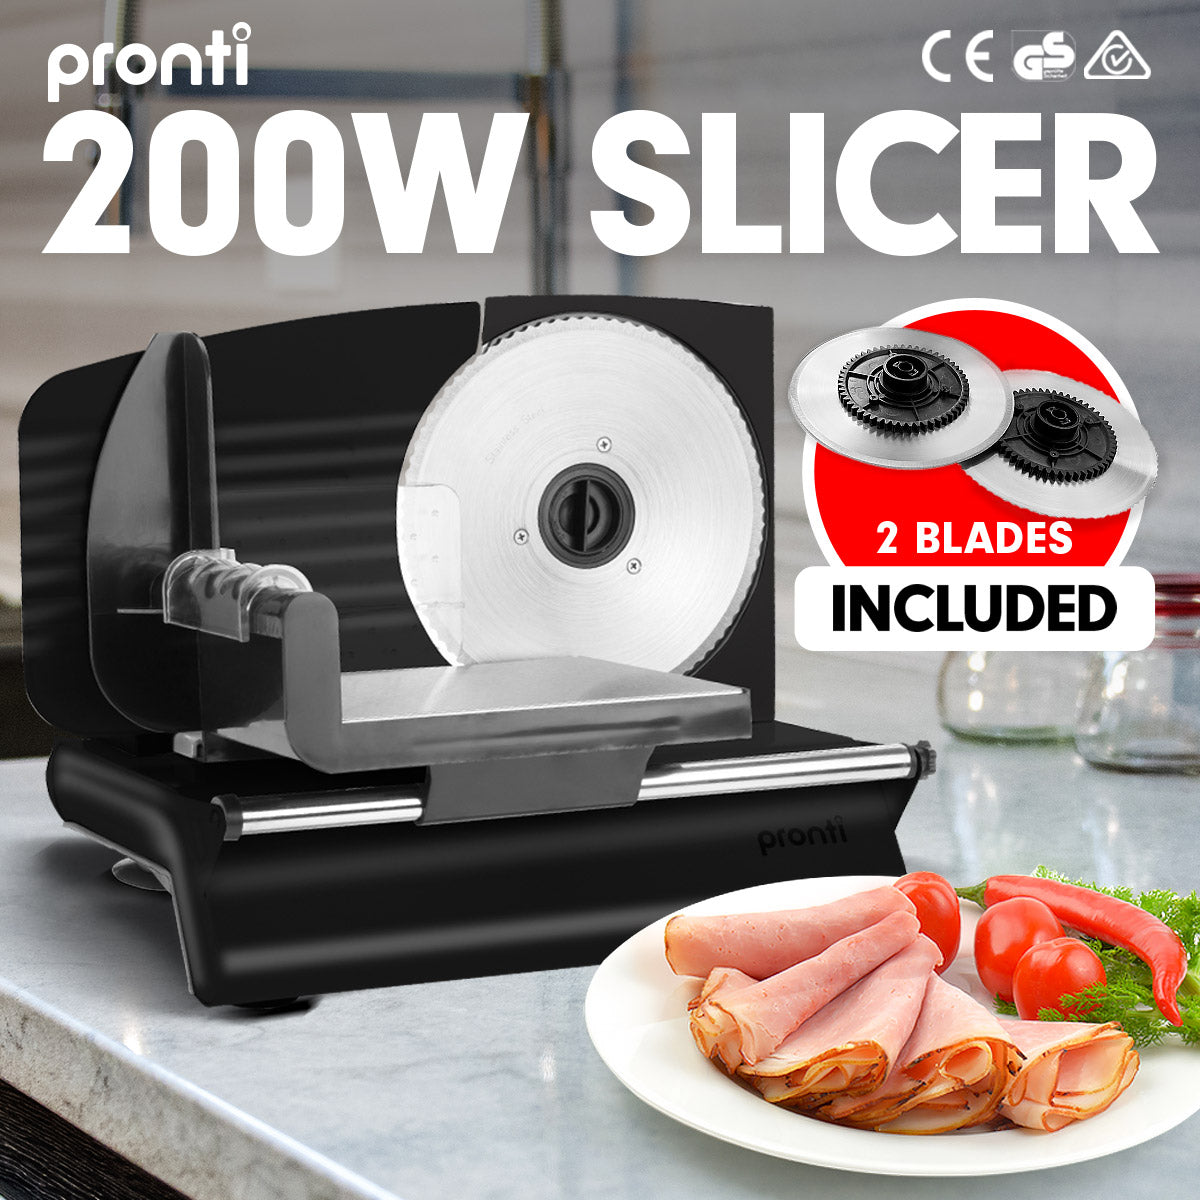 200W  Pronti Deli and Food Electric Meat Slicer Blades Processor Black